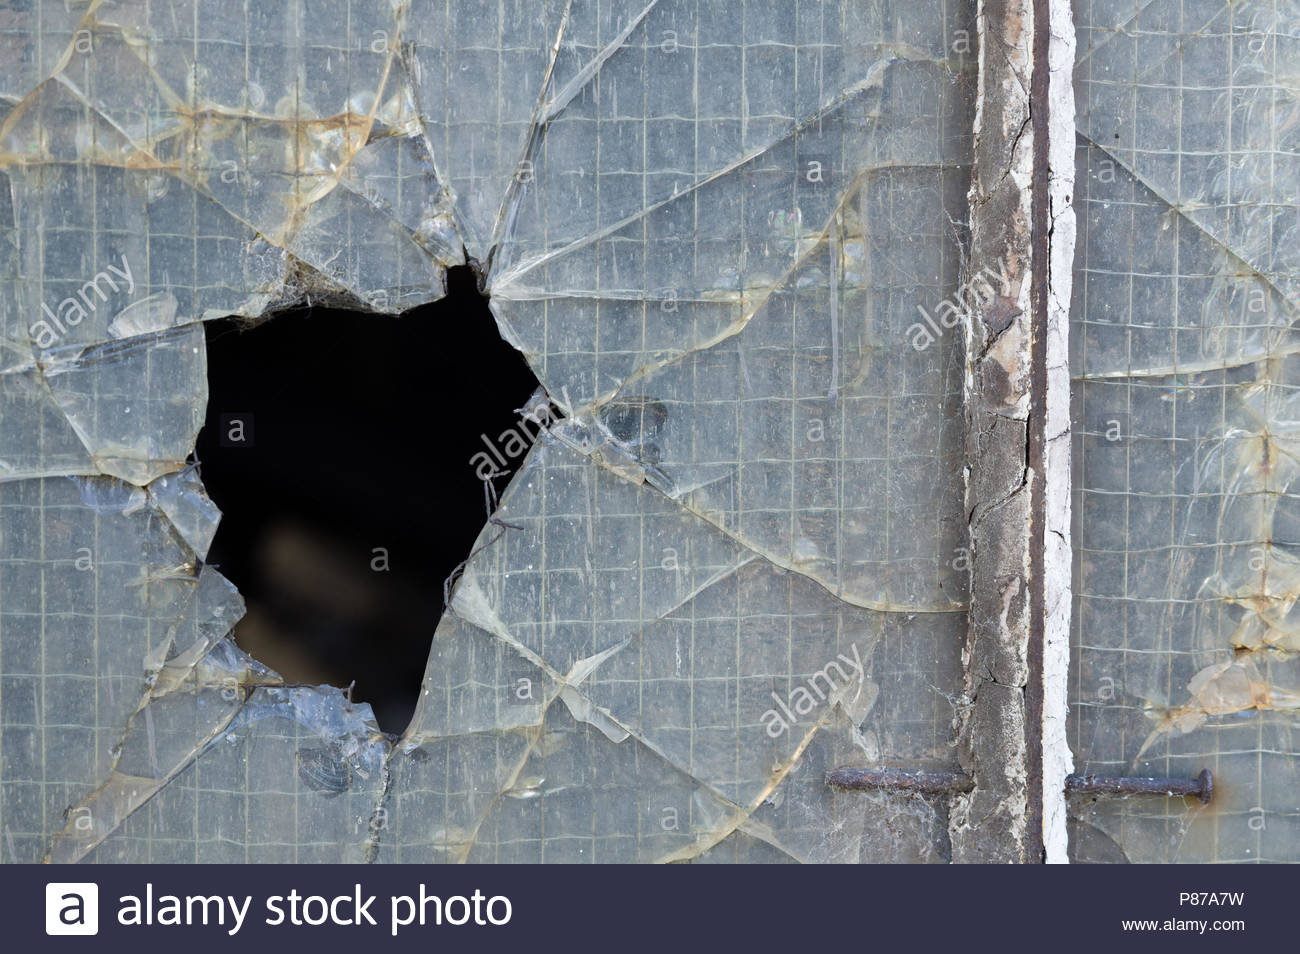 Reinforced Glass Stock Photos & Reinforced Glass Stock Images - Alamy